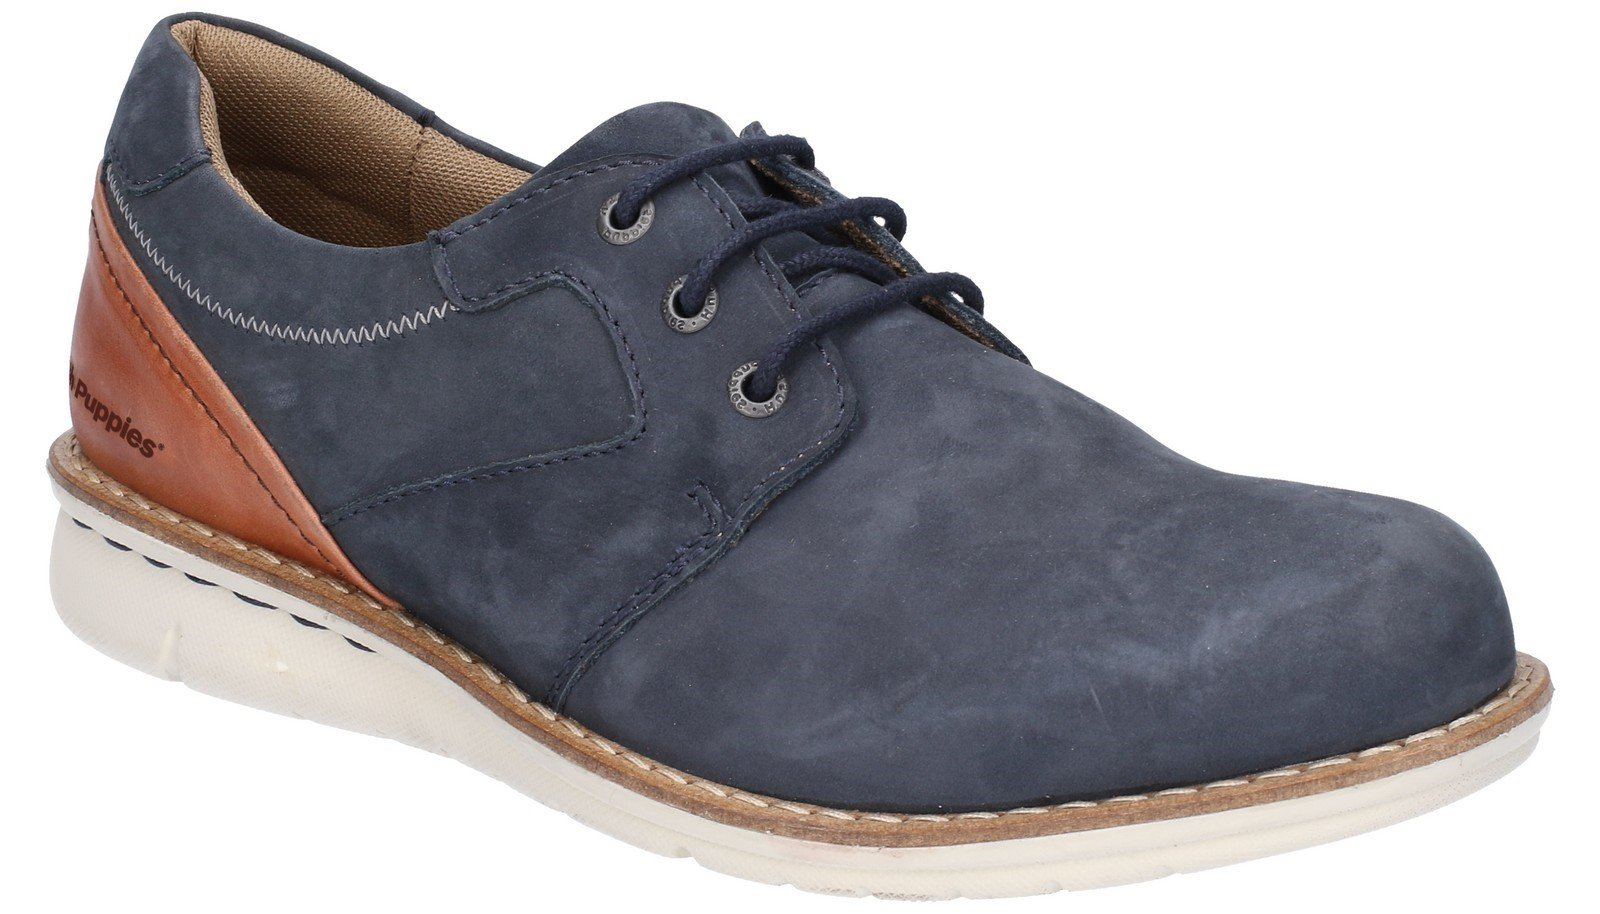 Hush Puppies Men's Chase Casual Lace Up Trainer Various Colours 28352 - Navy/Brown 6